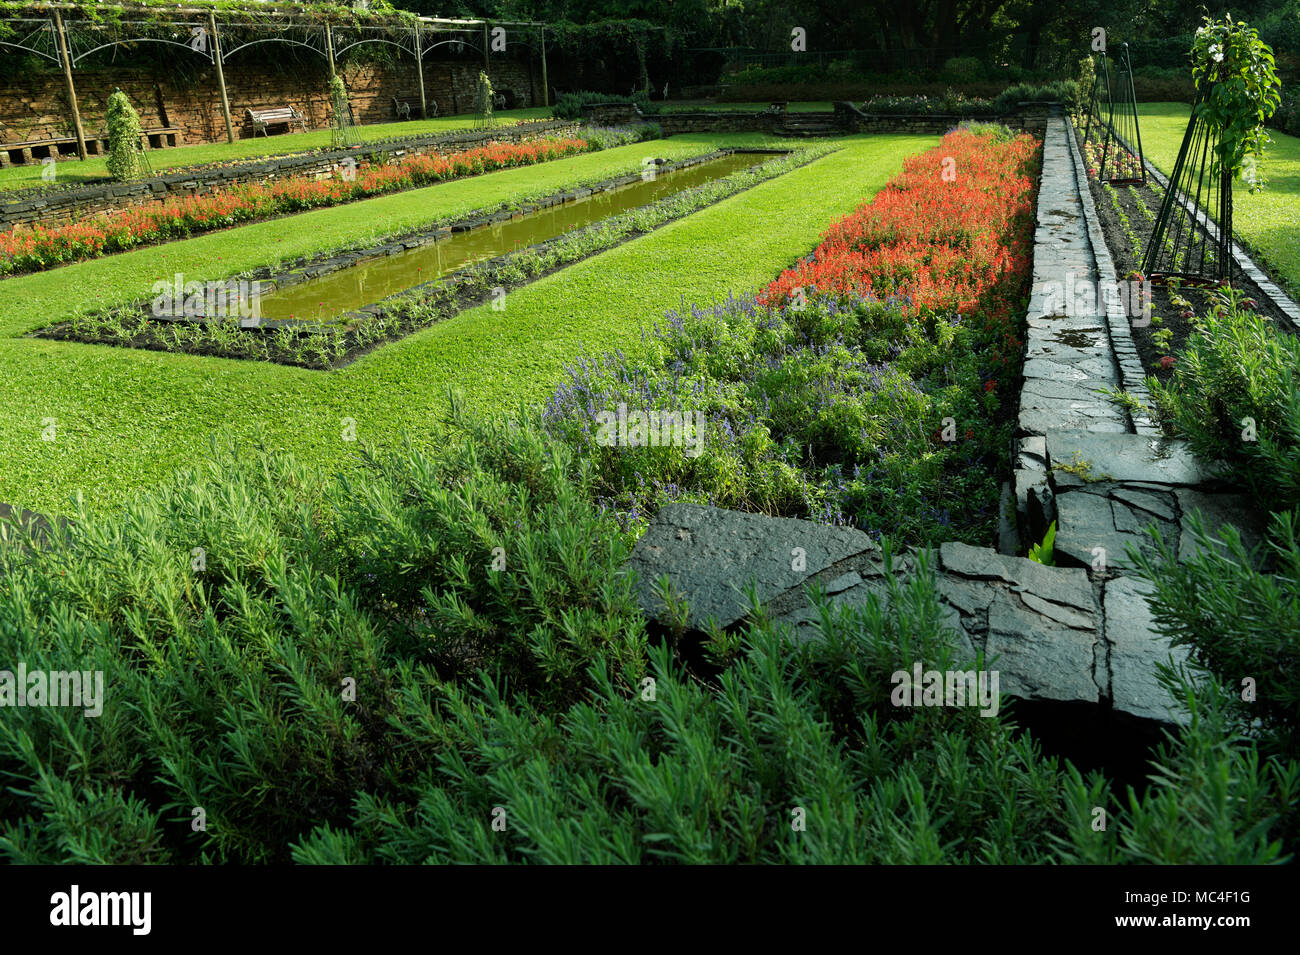 Captivating Classic English Sunken Garden Section Of The Beautiful Durban Botanical  Garden With Strong Lines And Shapes